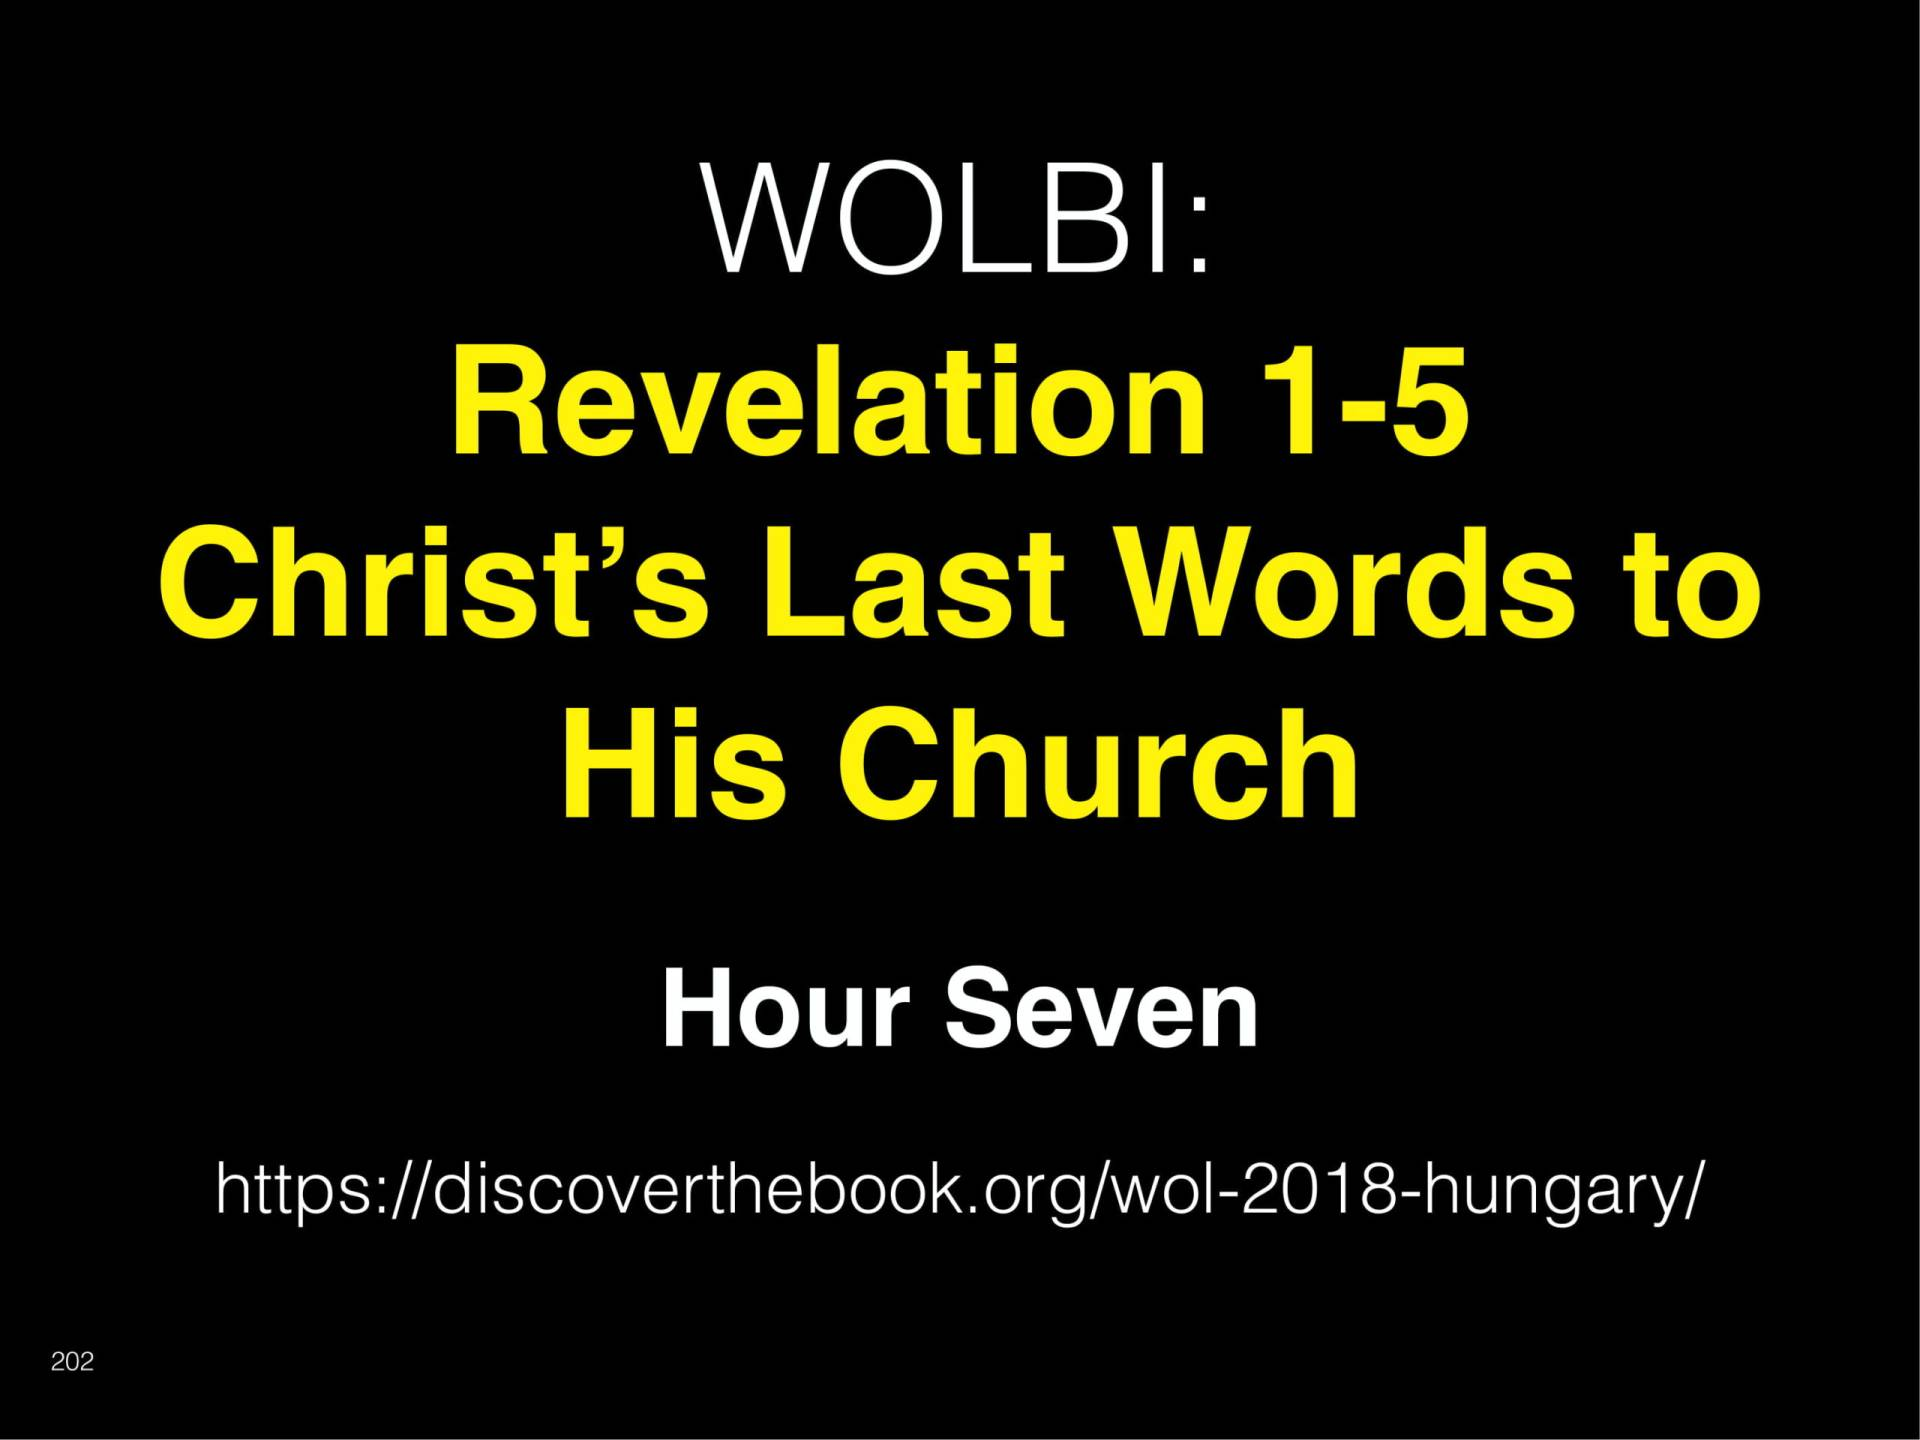 WOL2018 Hungary - 09 - Christ's Last Words To His Church - Where The Great Physic (36)